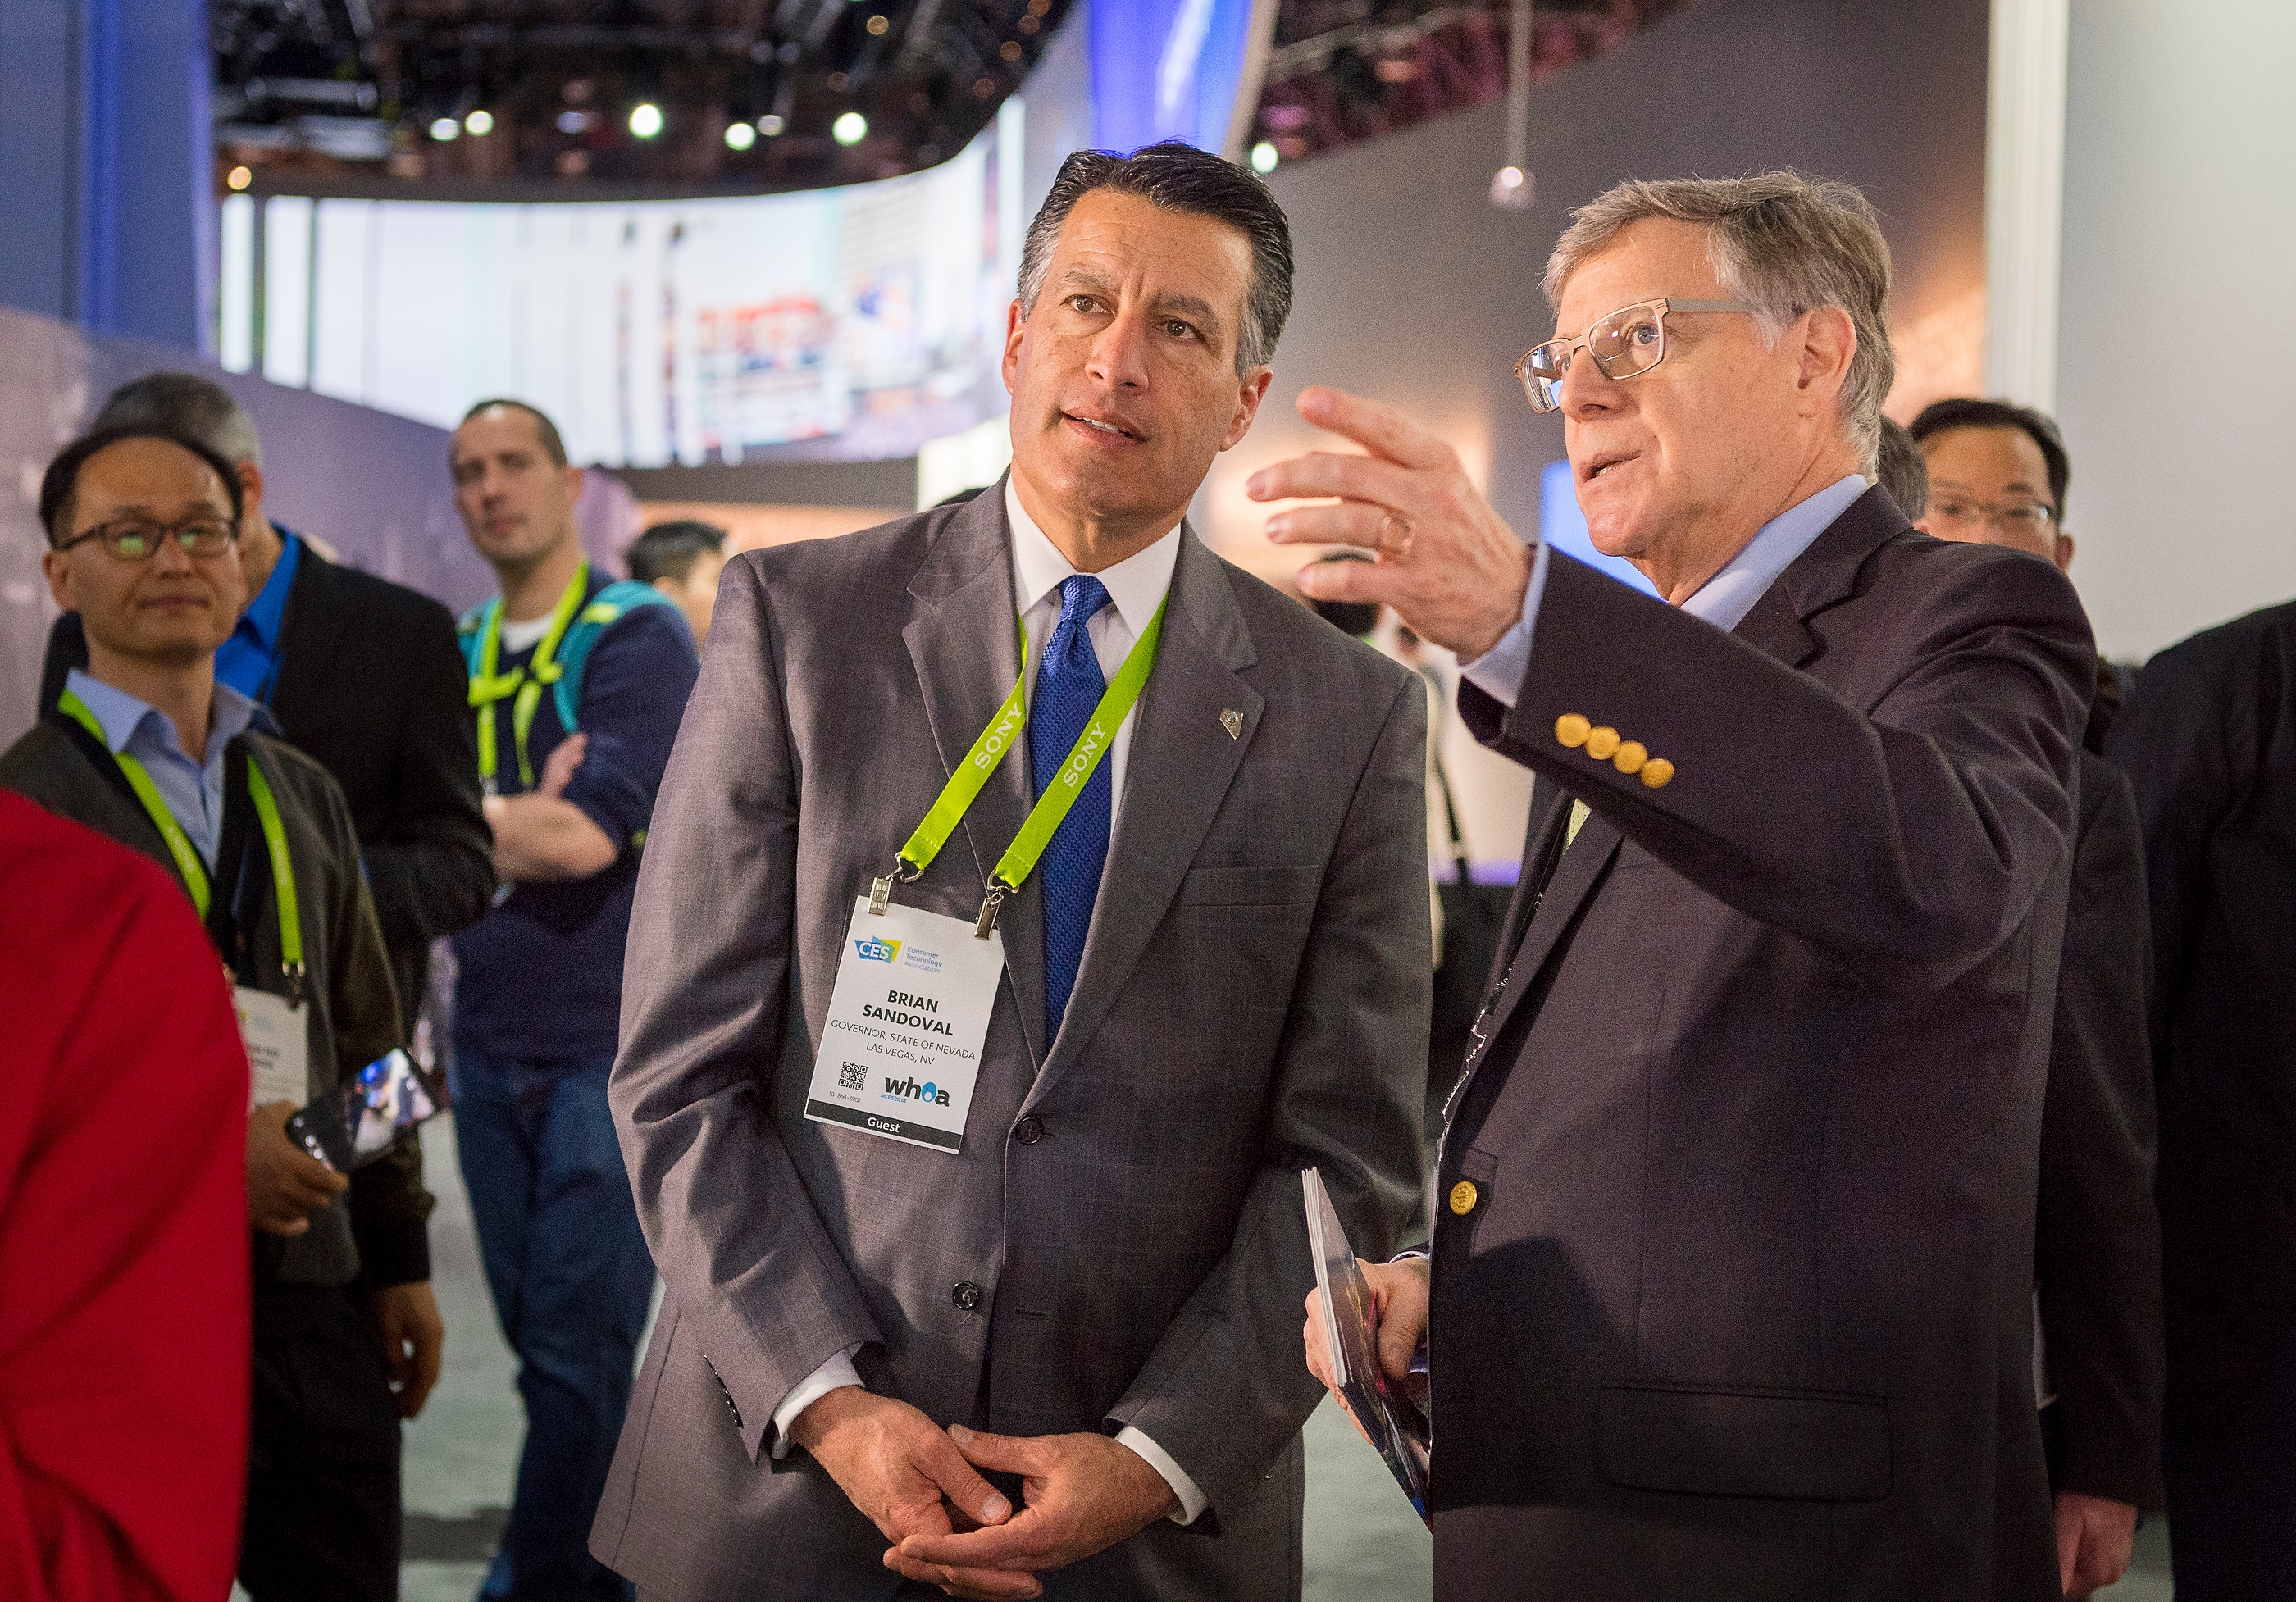 Nevada Governor Brian Sandoval, left, gets a tour of the Panasonic booth at CES by Peter Fannon, Vice President of Corporate, Government & Public Affairs, Panasonic Corporation of North America, Inc., at the Las Vegas Convention Center on Thursday, Jan. 11, 2018. CREDIT: Mark Damon/Las Vegas News Bureau